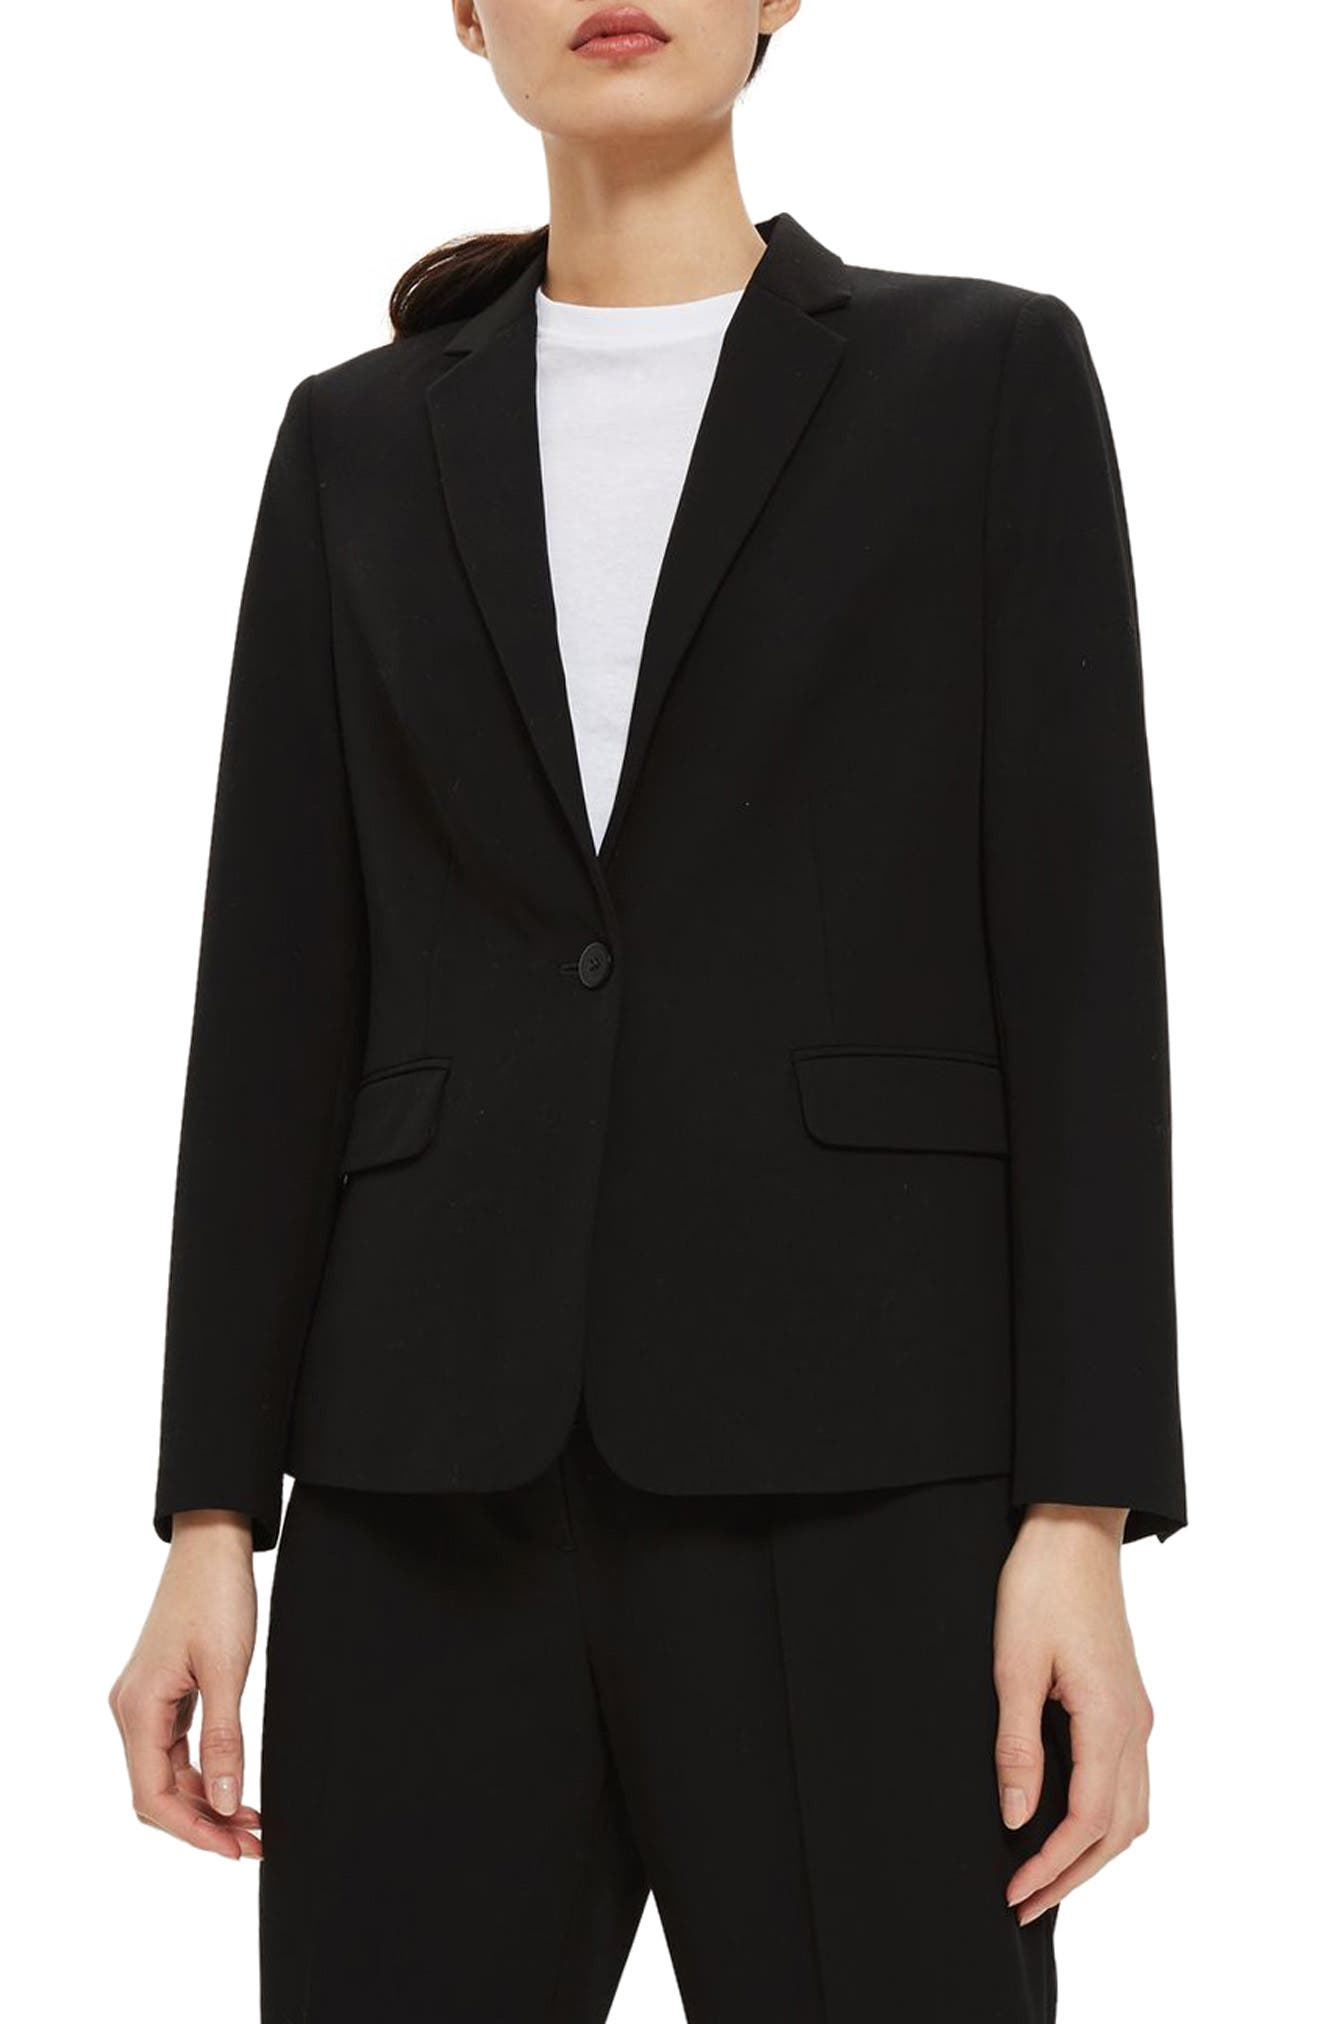 Single Breasted Suit Jacket,                             Main thumbnail 1, color,                             Black